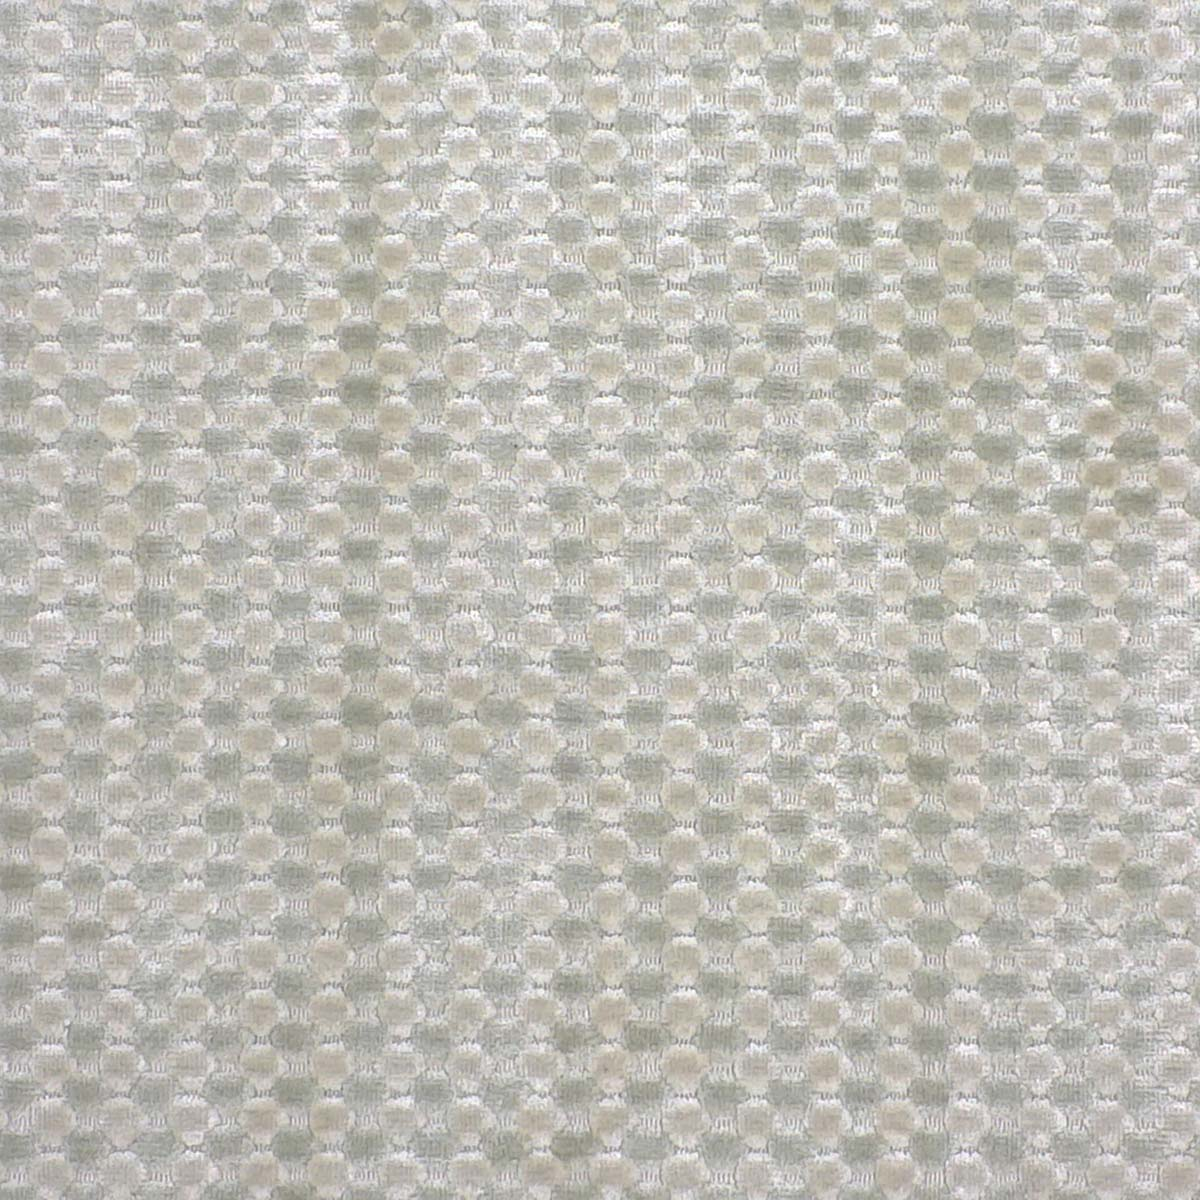 STARB1_LuxeSpotted_Beige_160x230-closeup